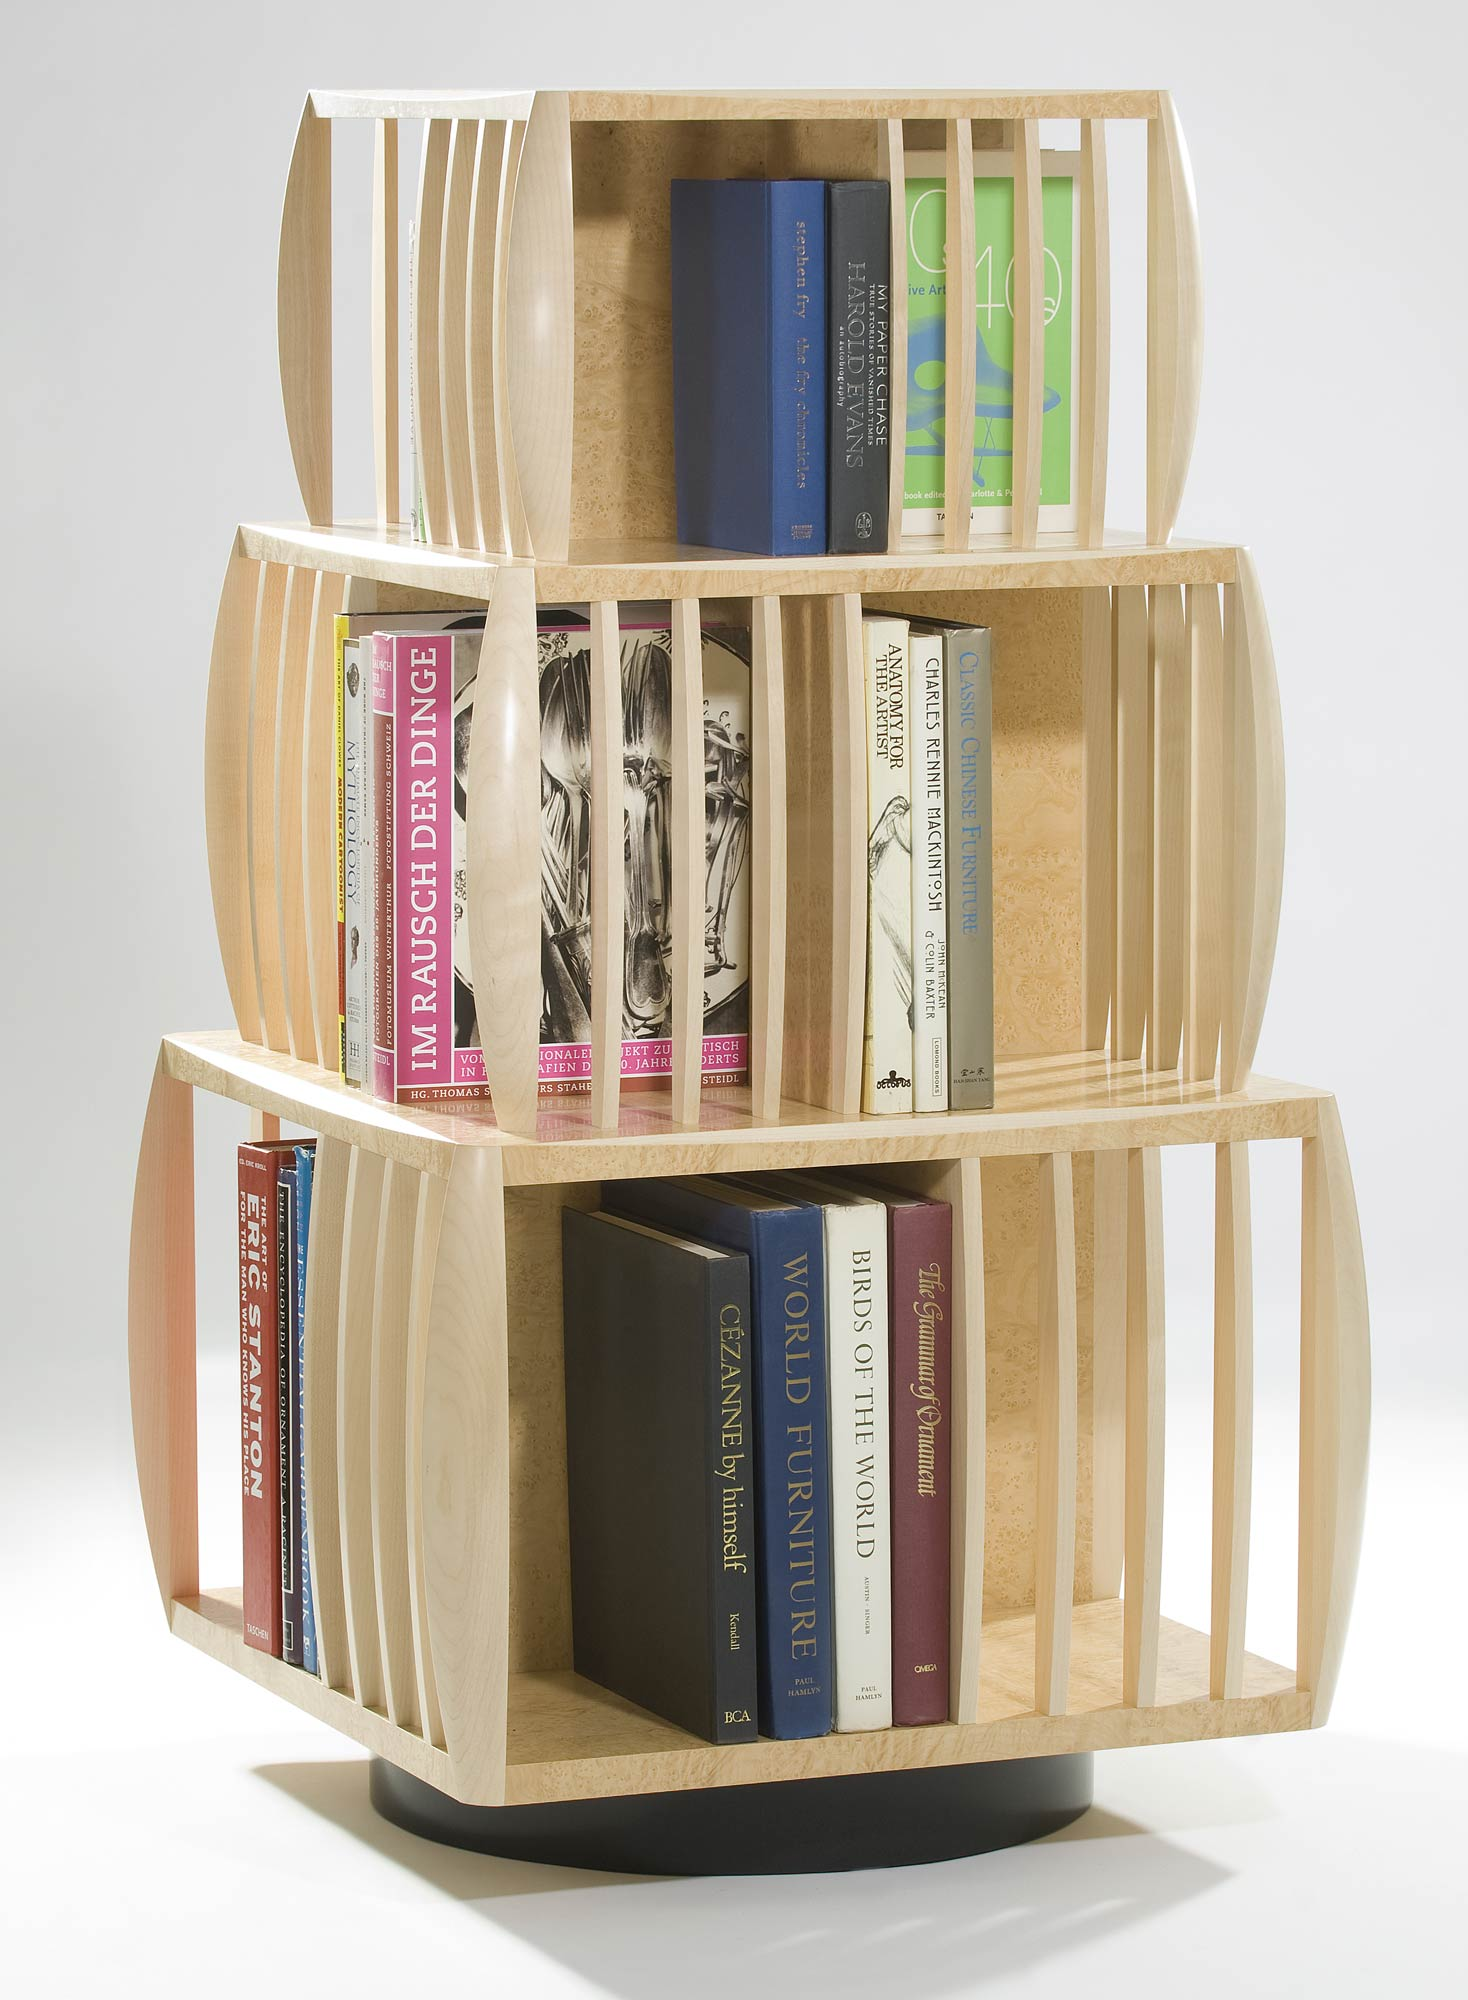 Revolving Book Shelf - DIY Woodworking Projects